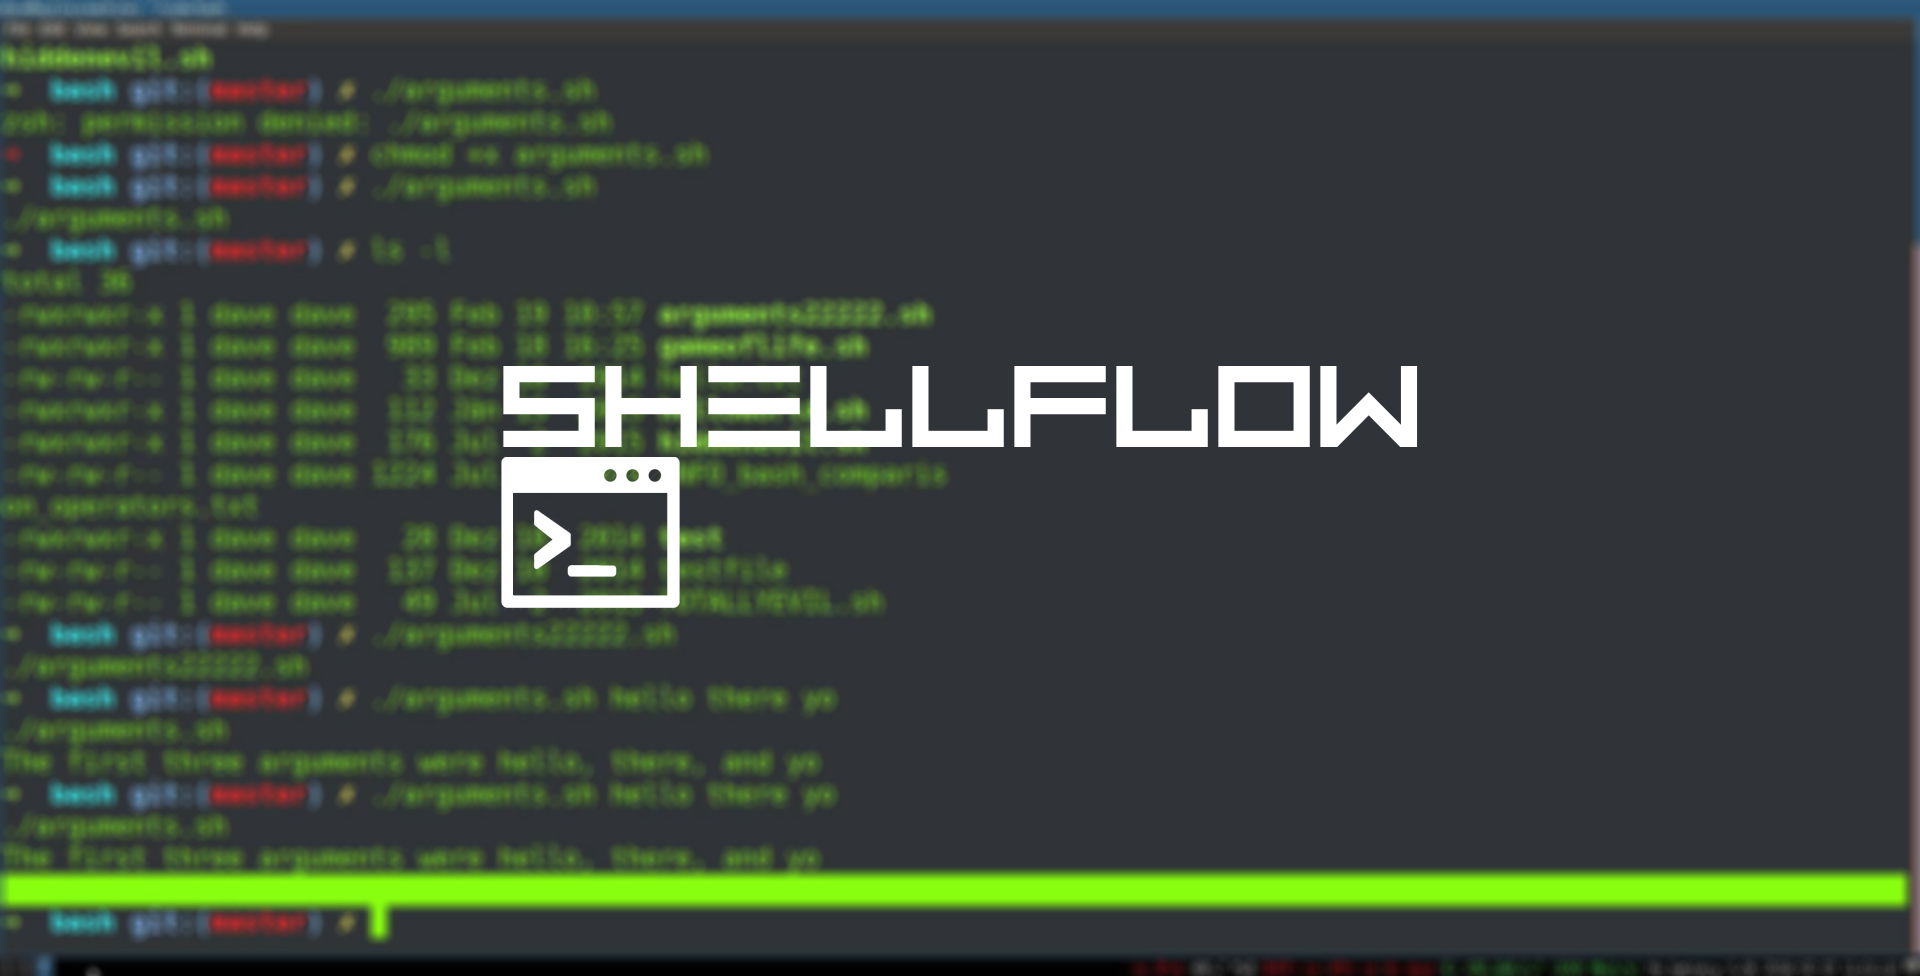 ShellFl0w – Assembly Hack (x64)